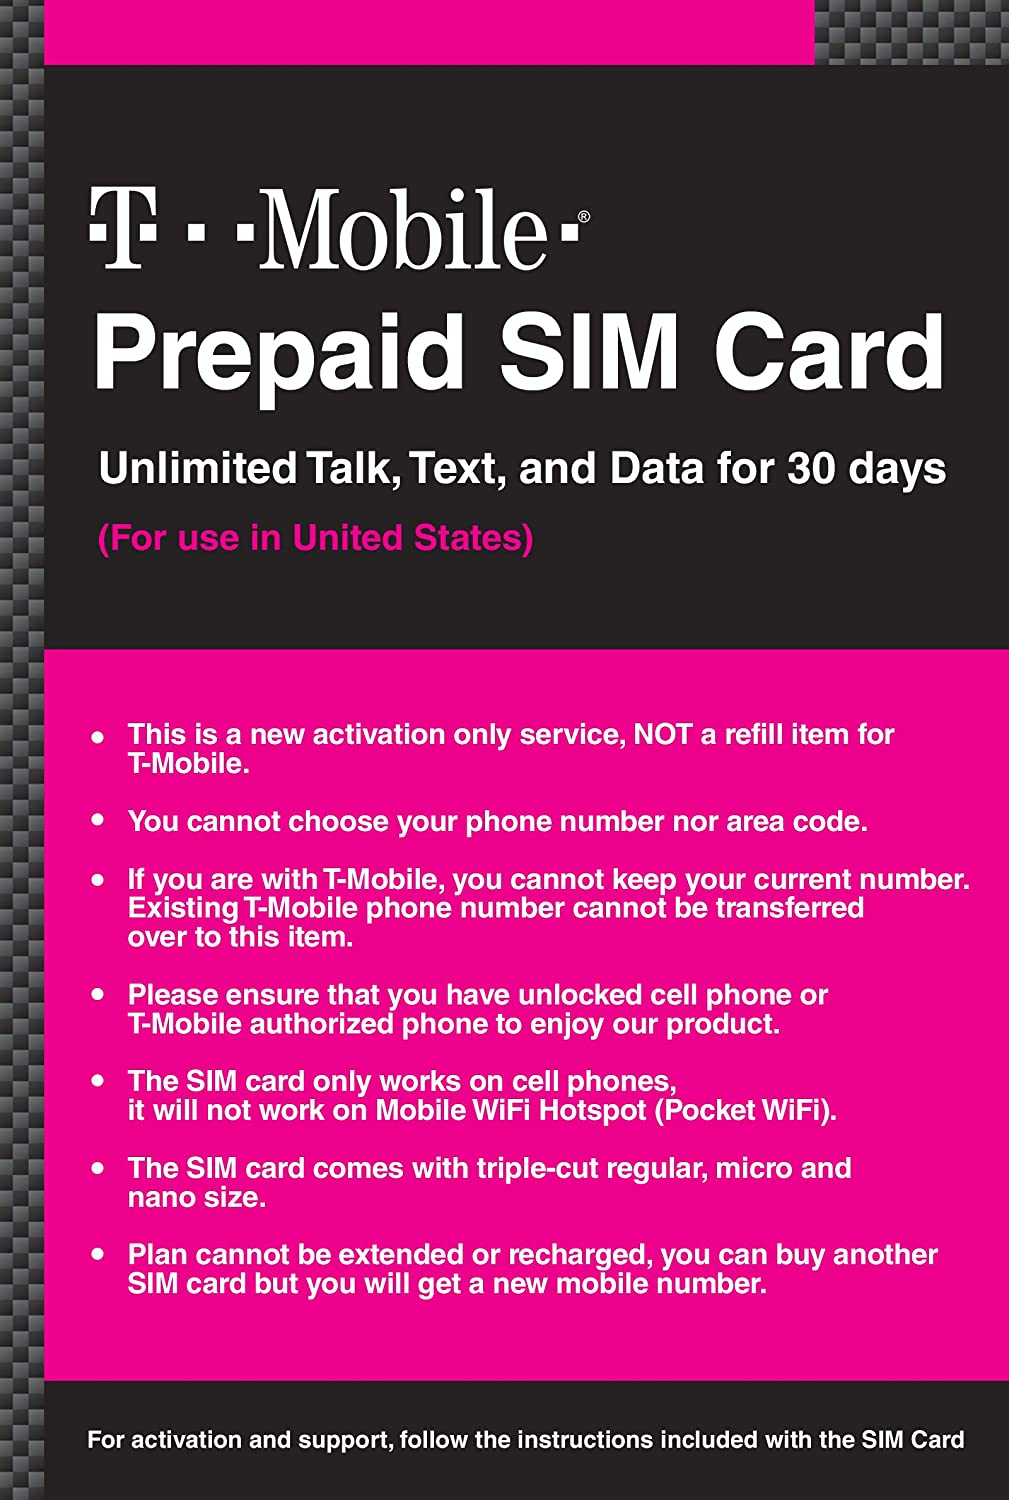 Amazon Com T Mobile Prepaid Sim Card Unlimited Talk Text And Data In Usa For 20 Days